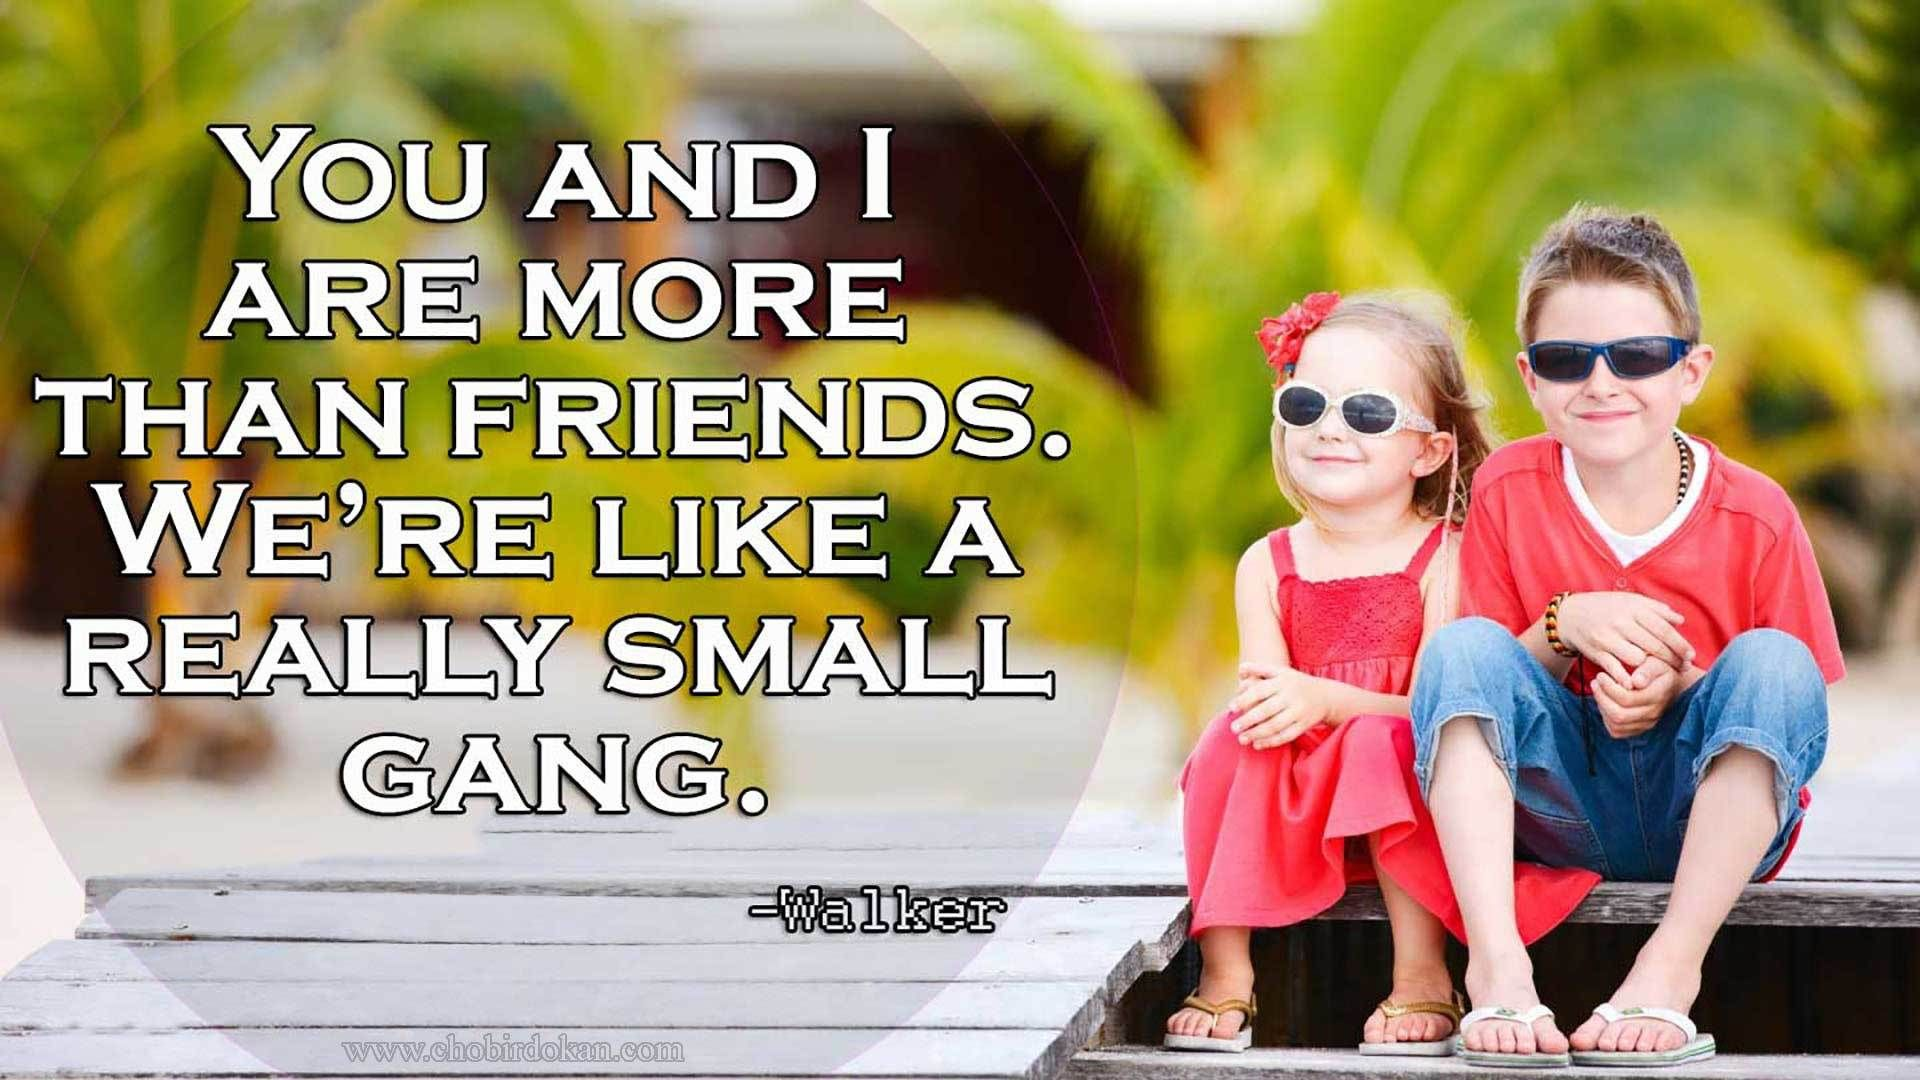 Happy friendship day messages sms quotes wallpapers images 1024667 happy friendship day messages sms quotes wallpapers images 1024667 friendship day quotes adorable wallpapers altavistaventures Image collections